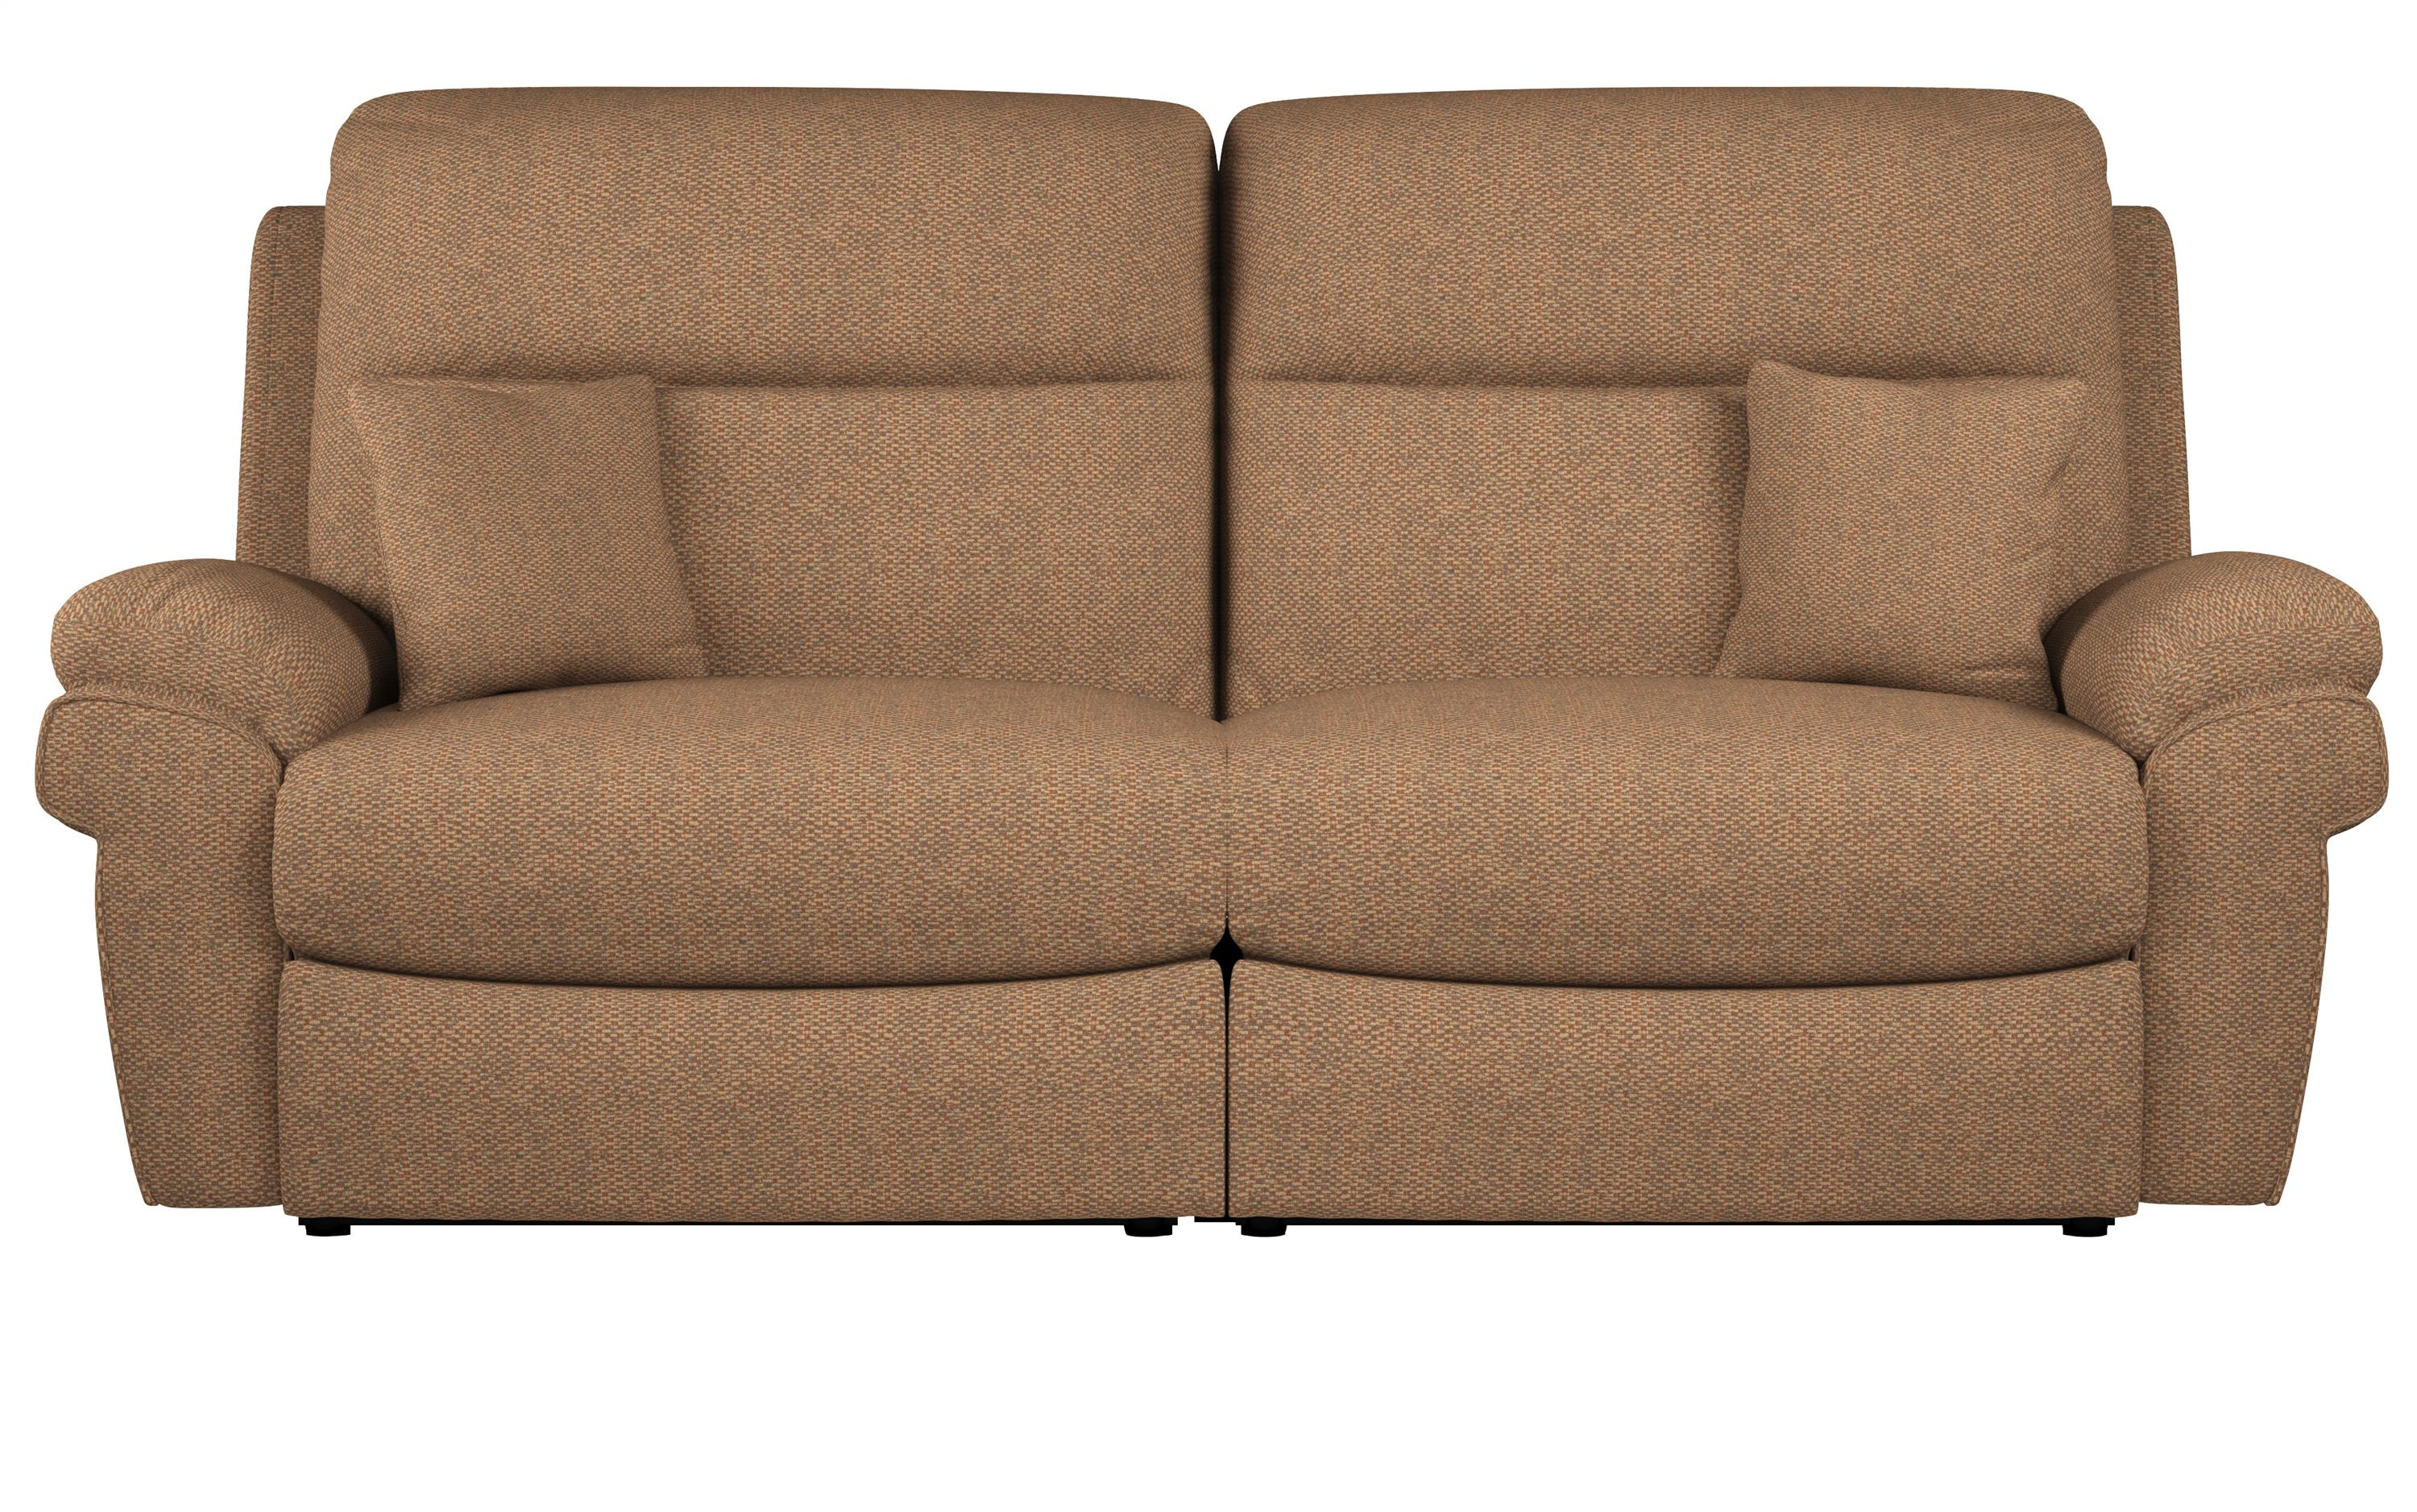 La-Z-Boy Tamla 3 Seater Static Sofa